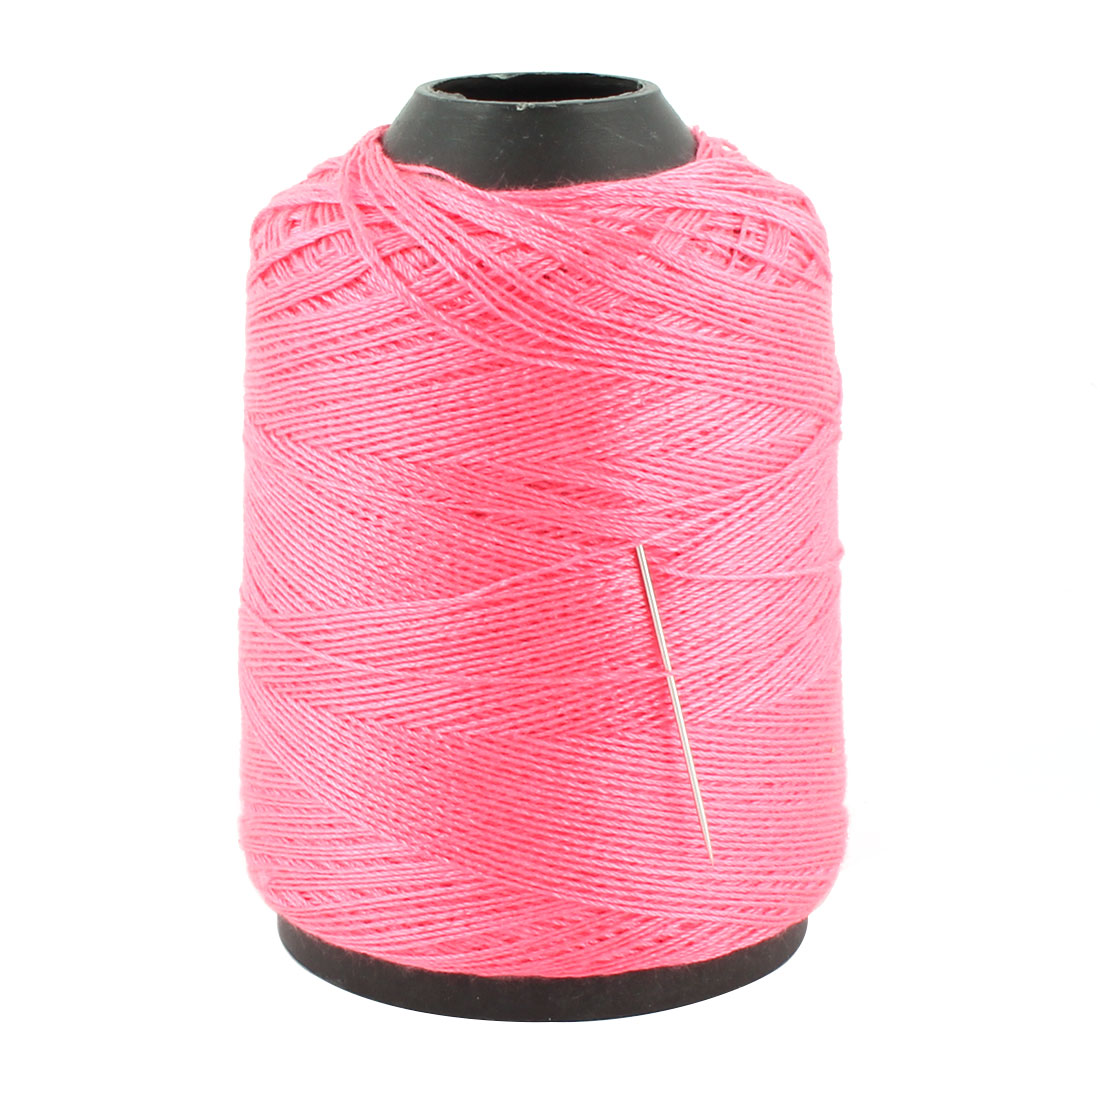 Family Cotton Blends Clothes Quilt Handcraft Stitching Sewing Thread Reel Pink Black